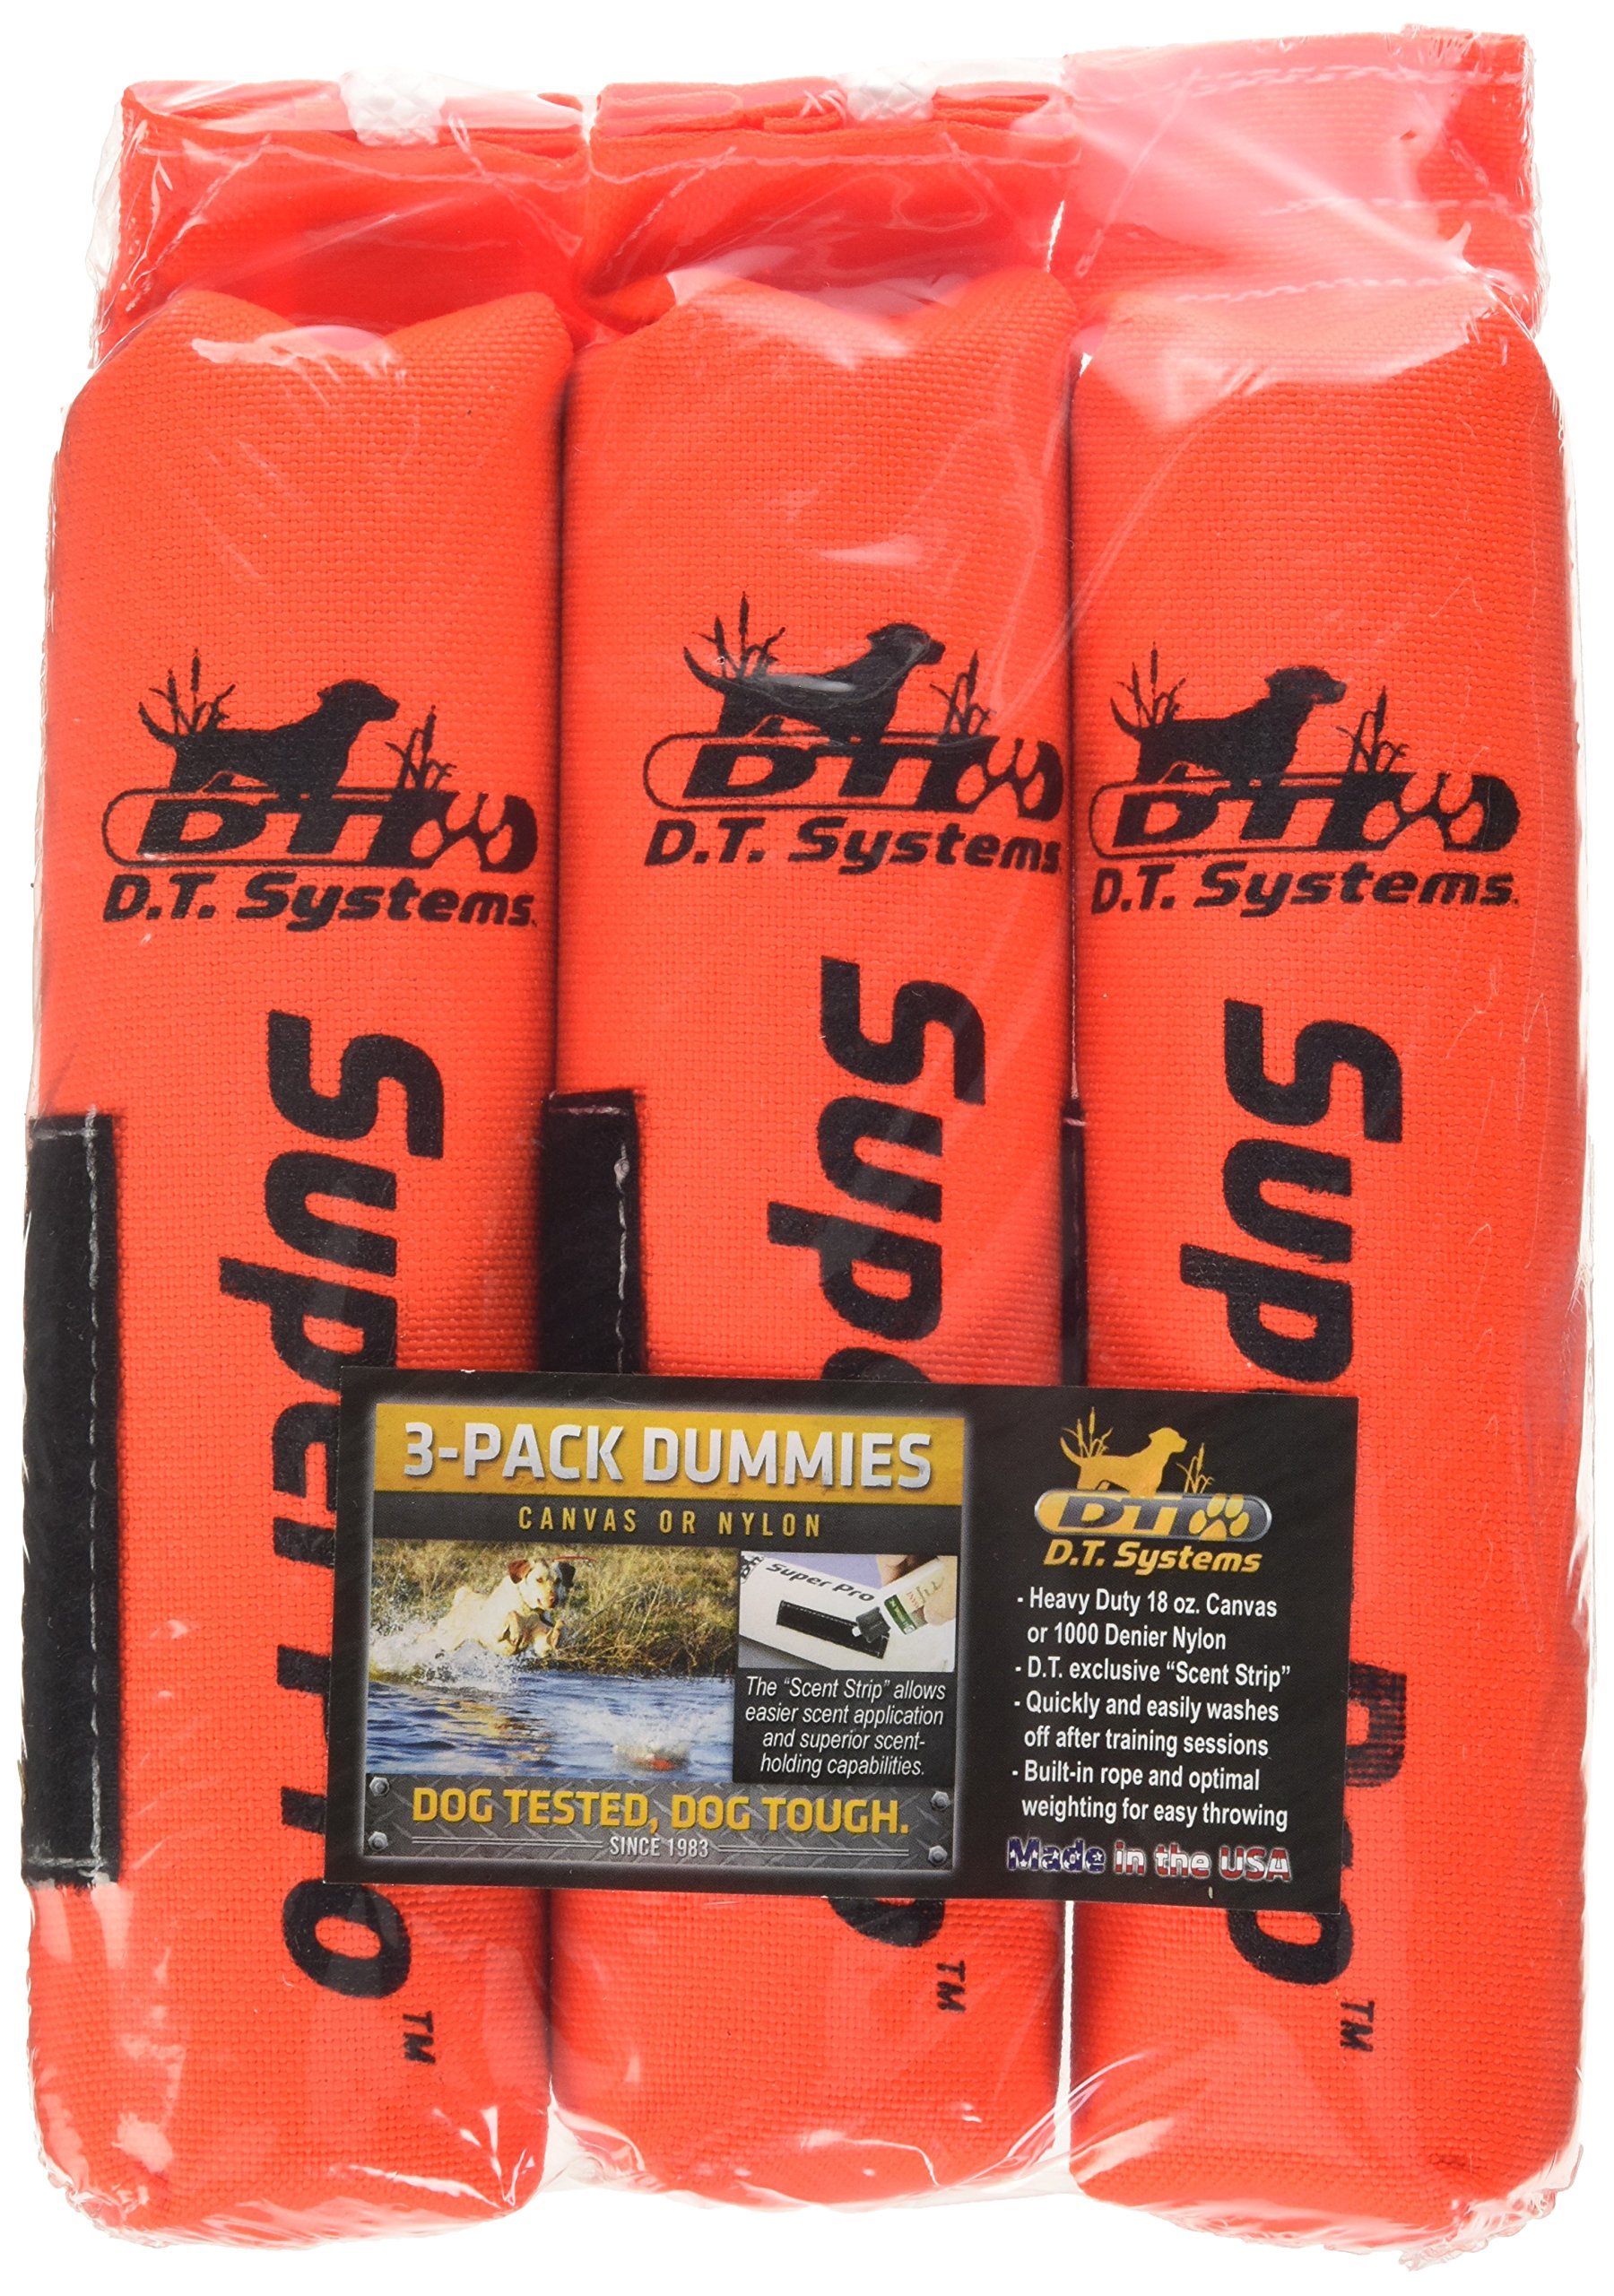 D.T. Systems Cordura Nylon Dog Training Dummy, Blaze orange, Small, 2-Inch by 9-Inch 3 Pack by D.T. Systems (Image #1)